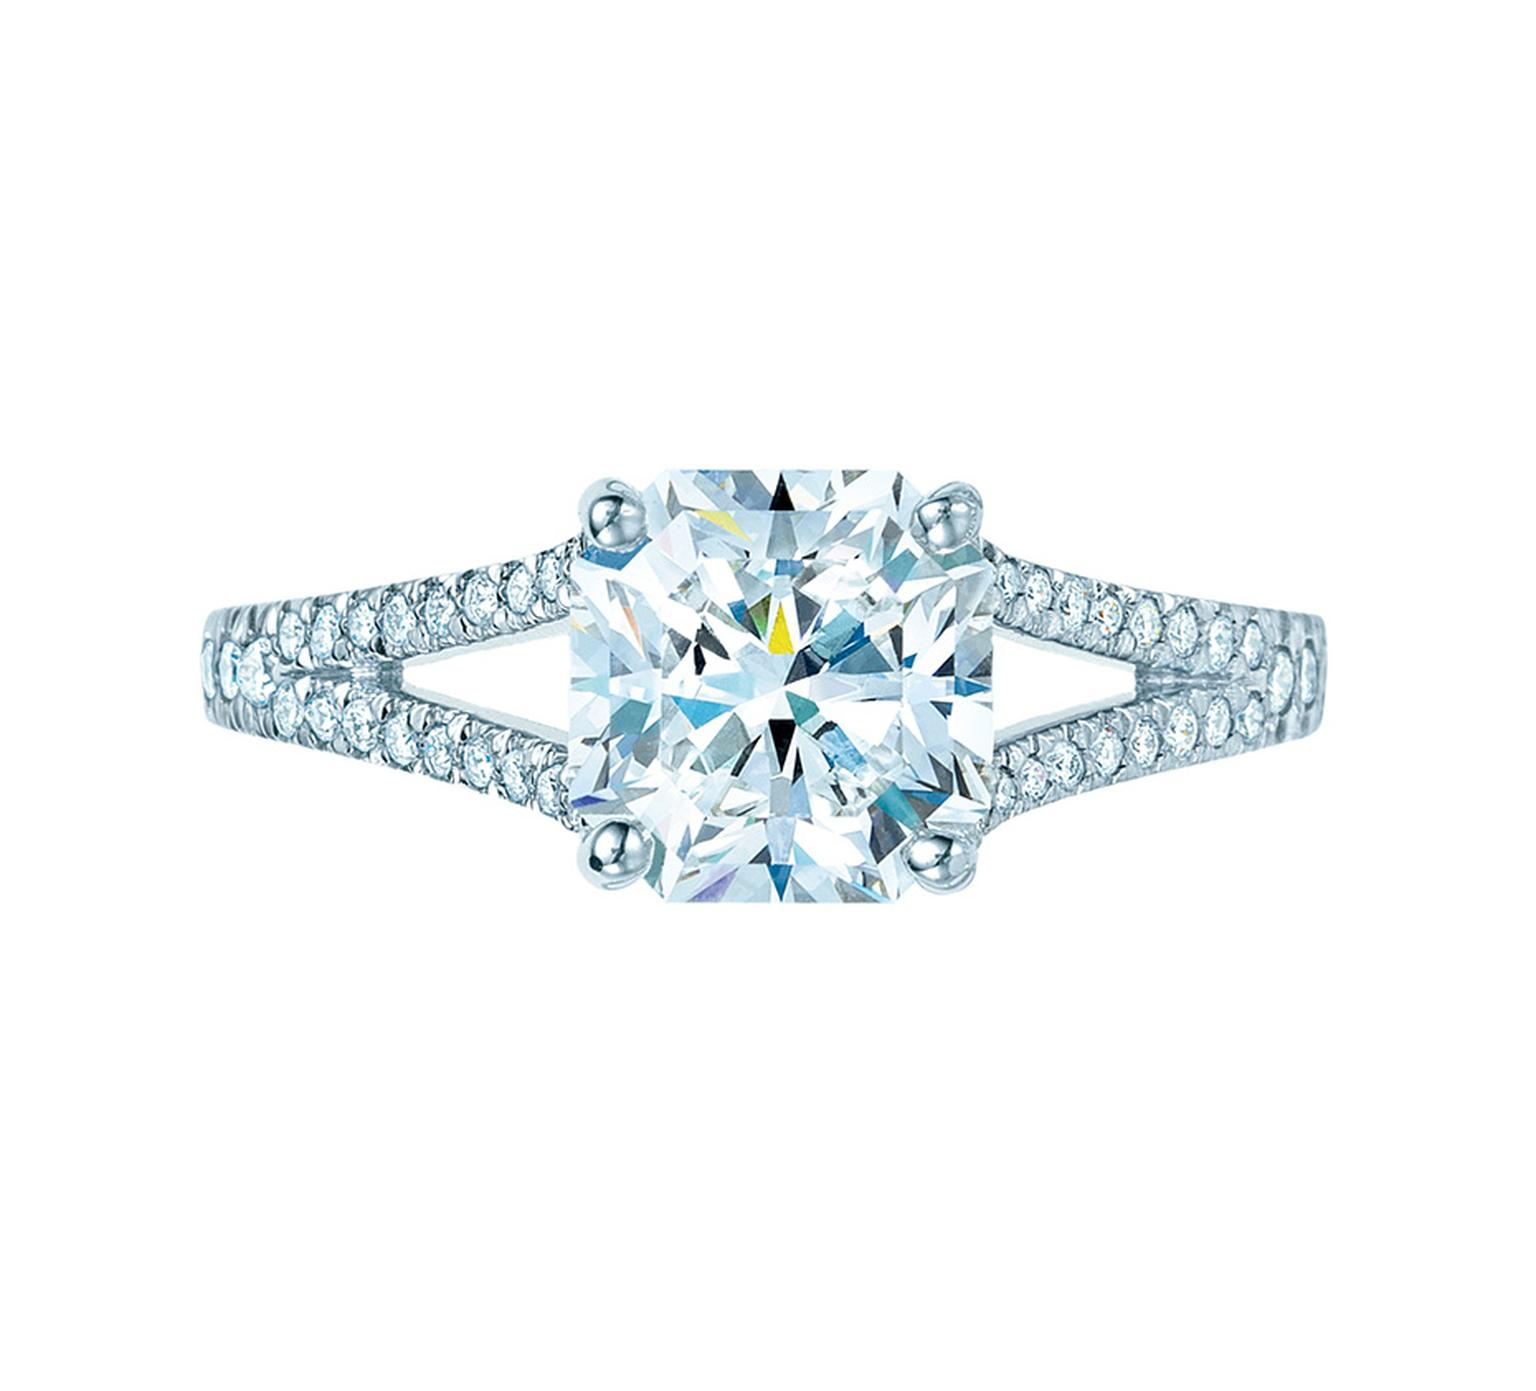 Tiffany & Co. Lucida diamond engagement ring.